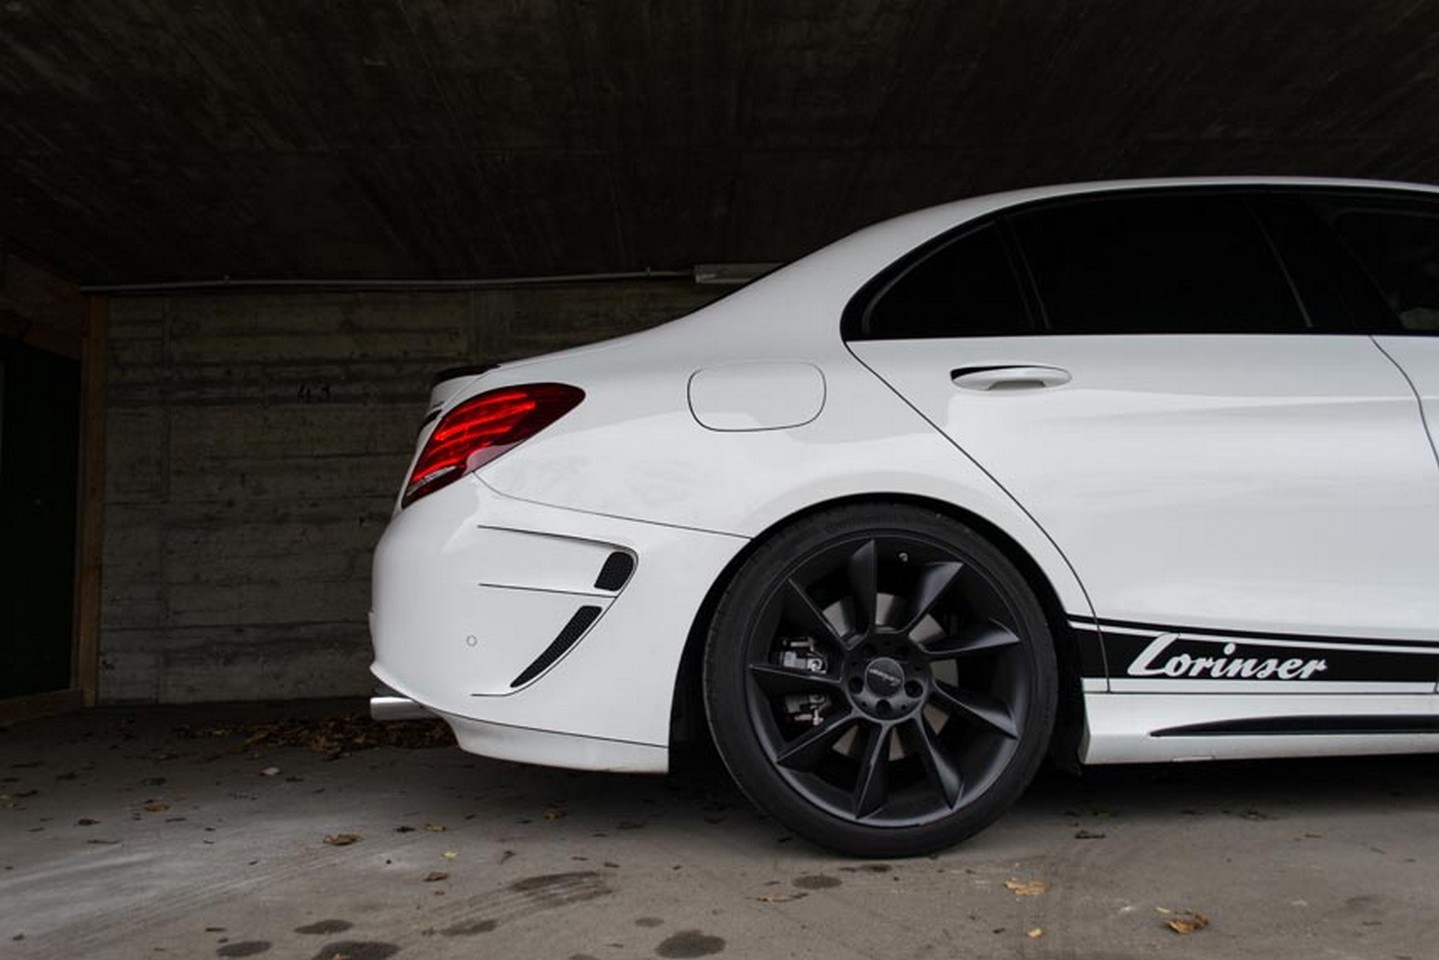 Mercedes C450 AMG Tuned To 435 HP By Lorinser Ruined With